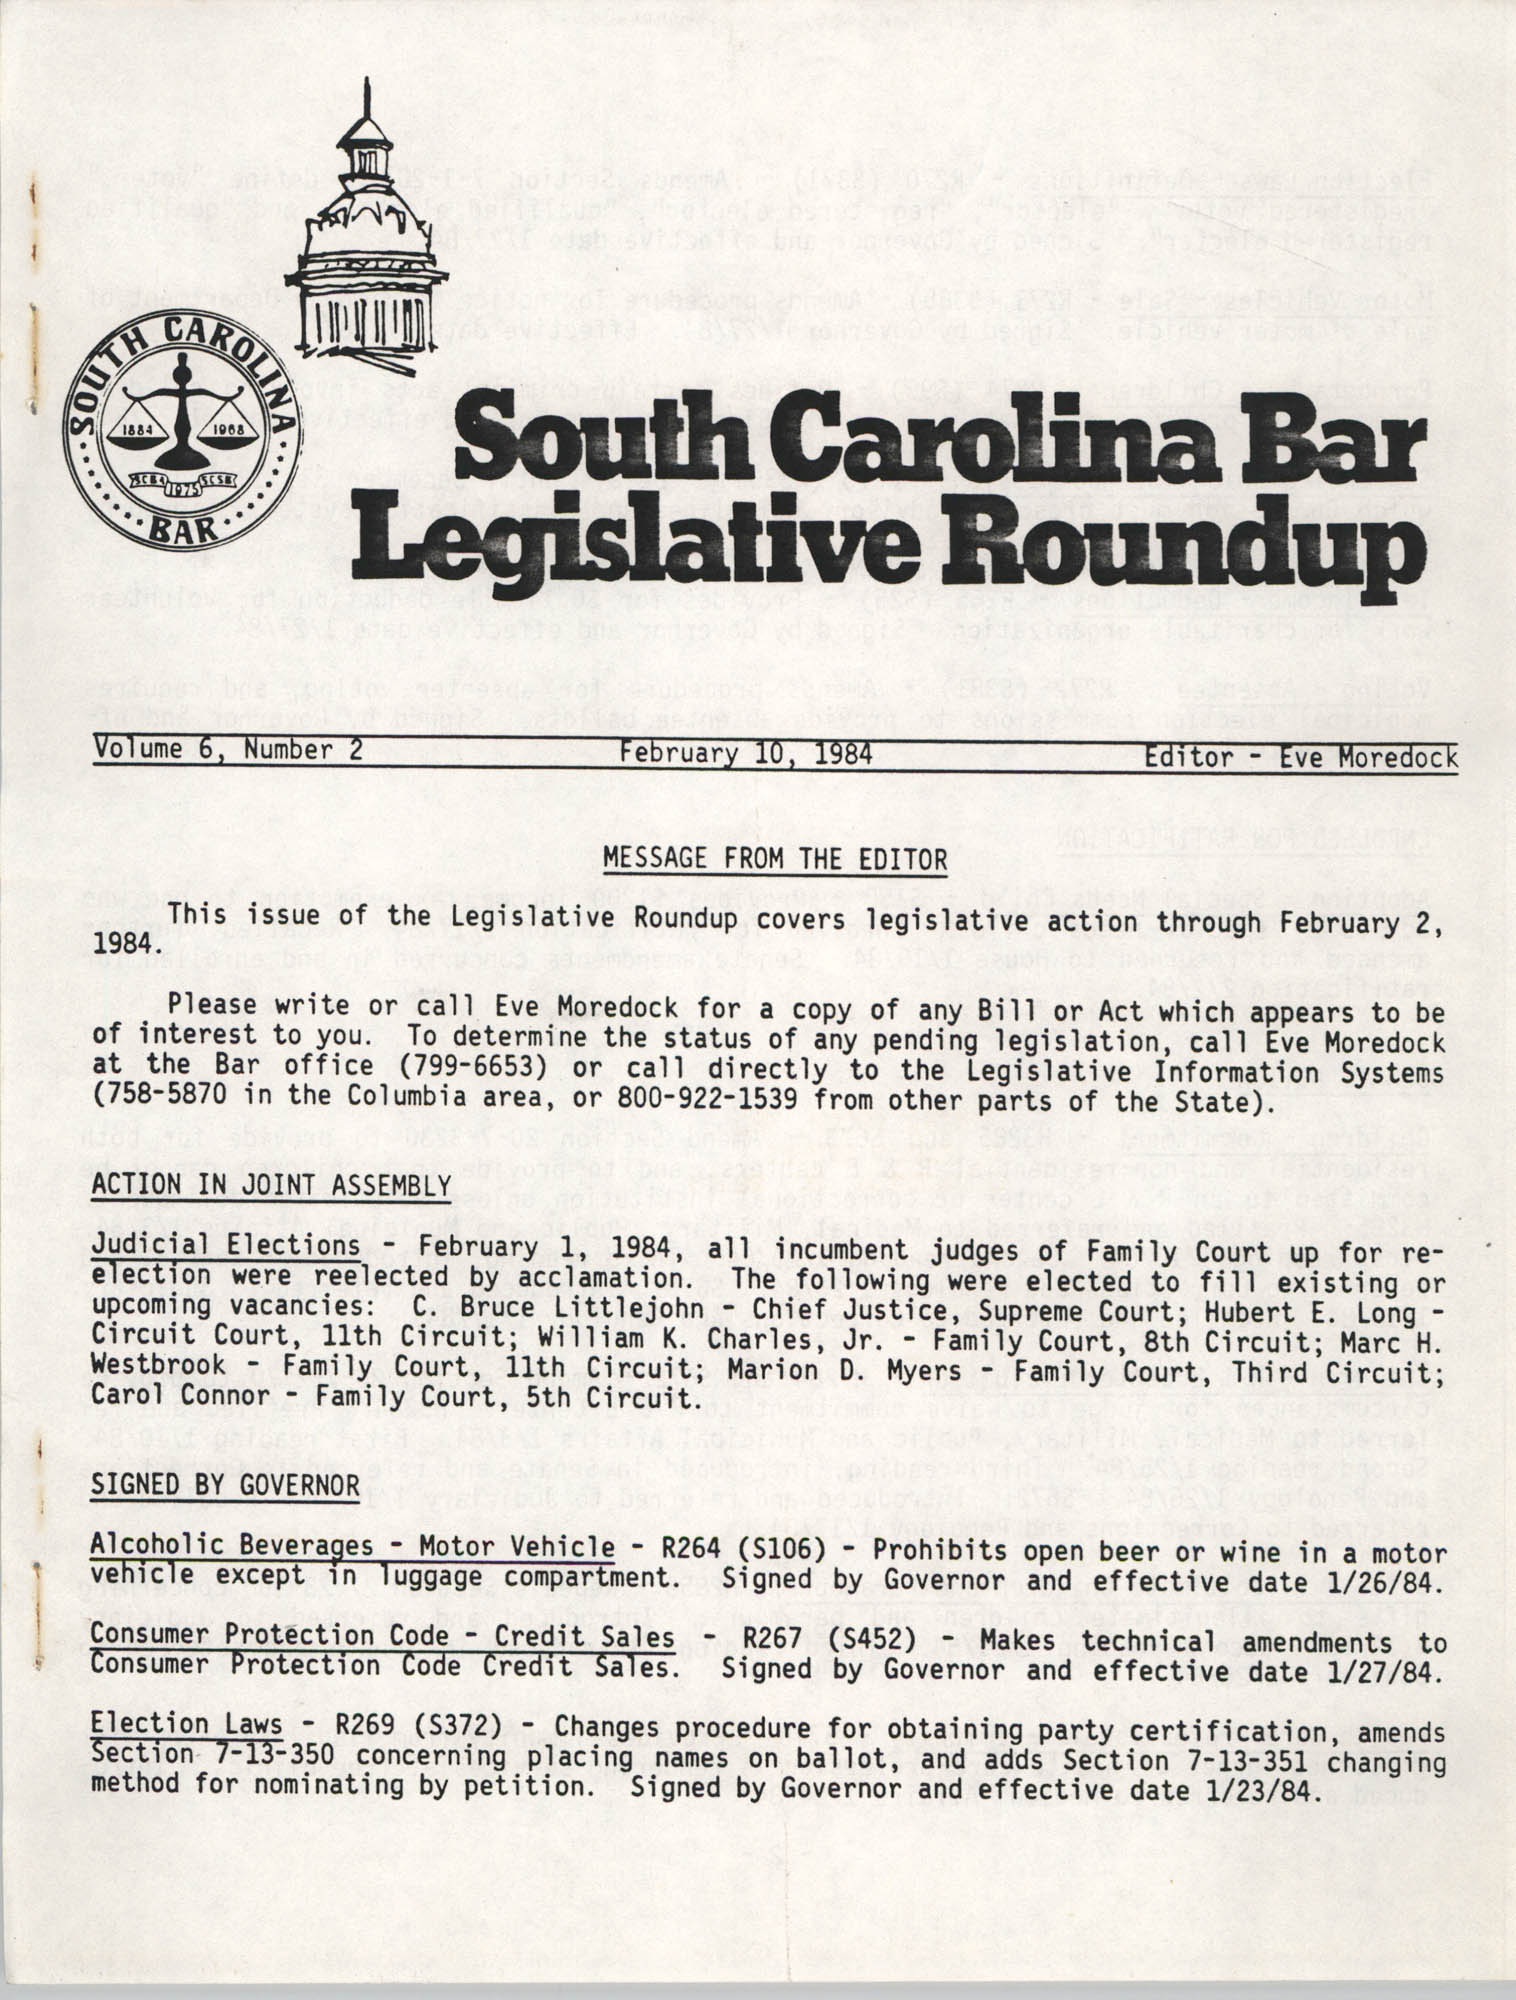 South Carolina Bar Legislative Roundup, Vol. 6 No. 2, February 10, 1984